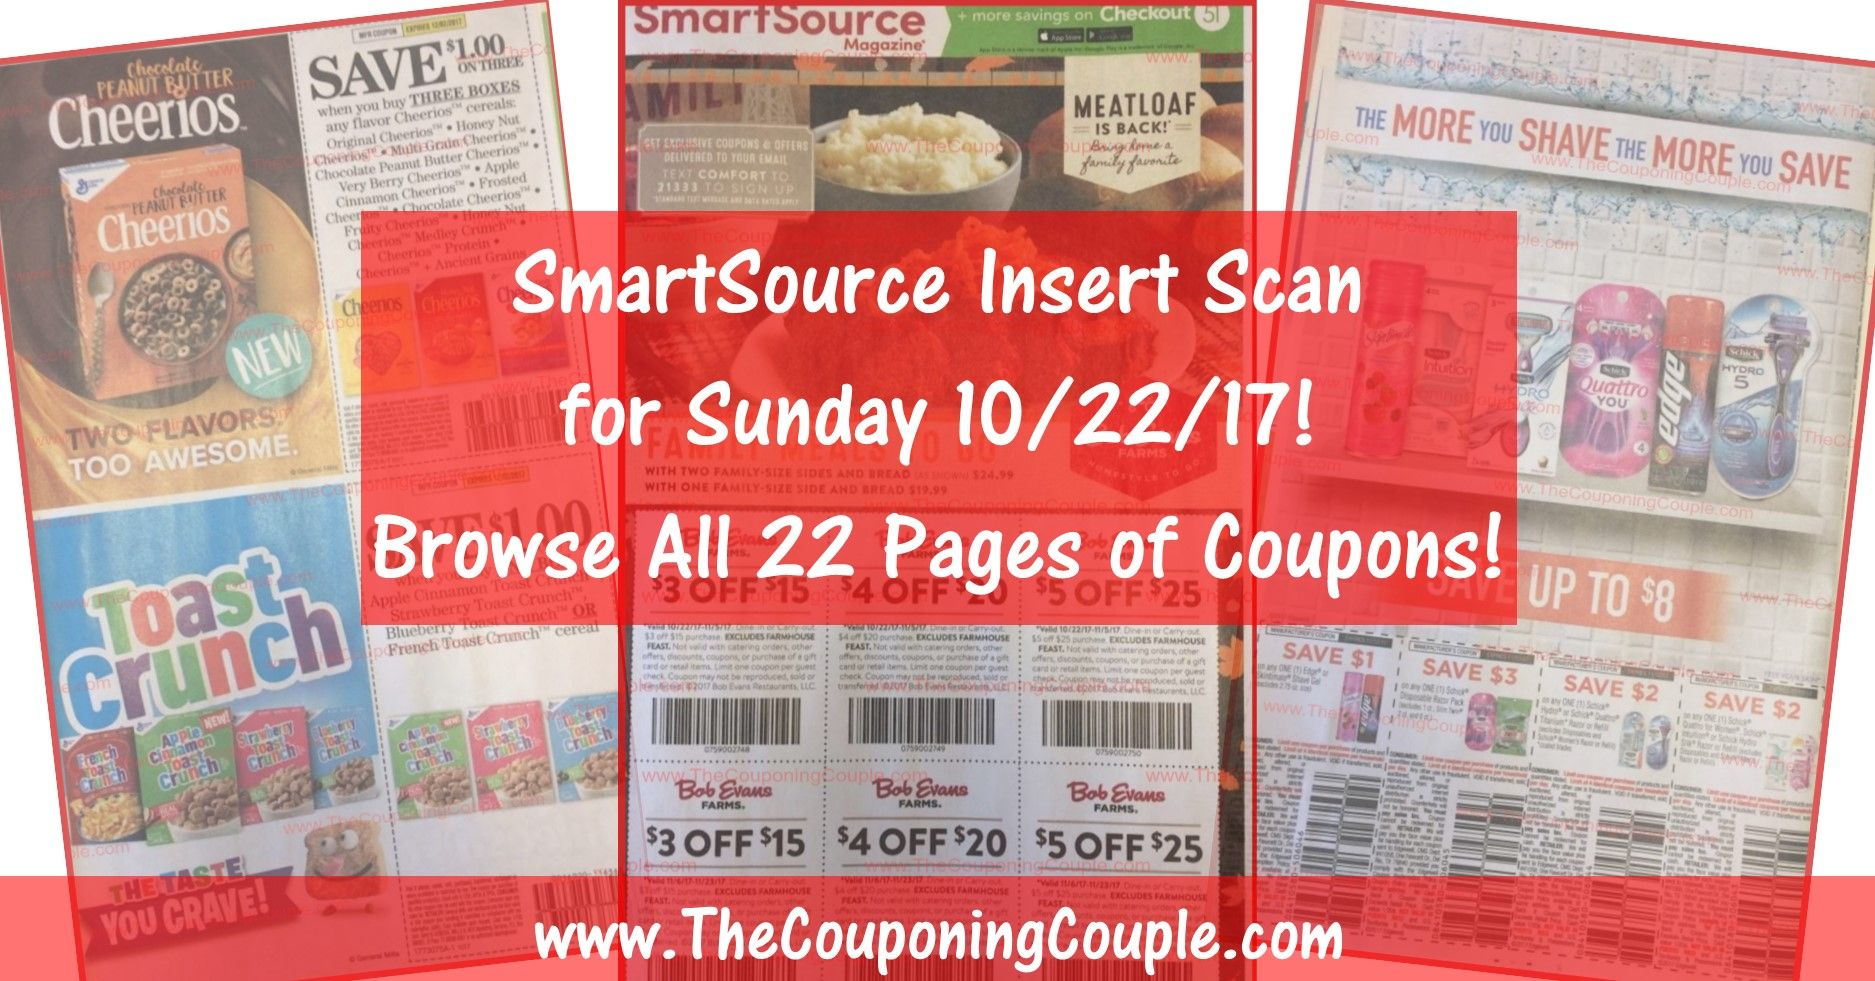 Want To See The Exact Coupons We Are Expecting In Sunday S 10 22 Smartsource Coupon Insert Smartsource Coupon Smartsource Coupon Inserts Smartsource Coupons